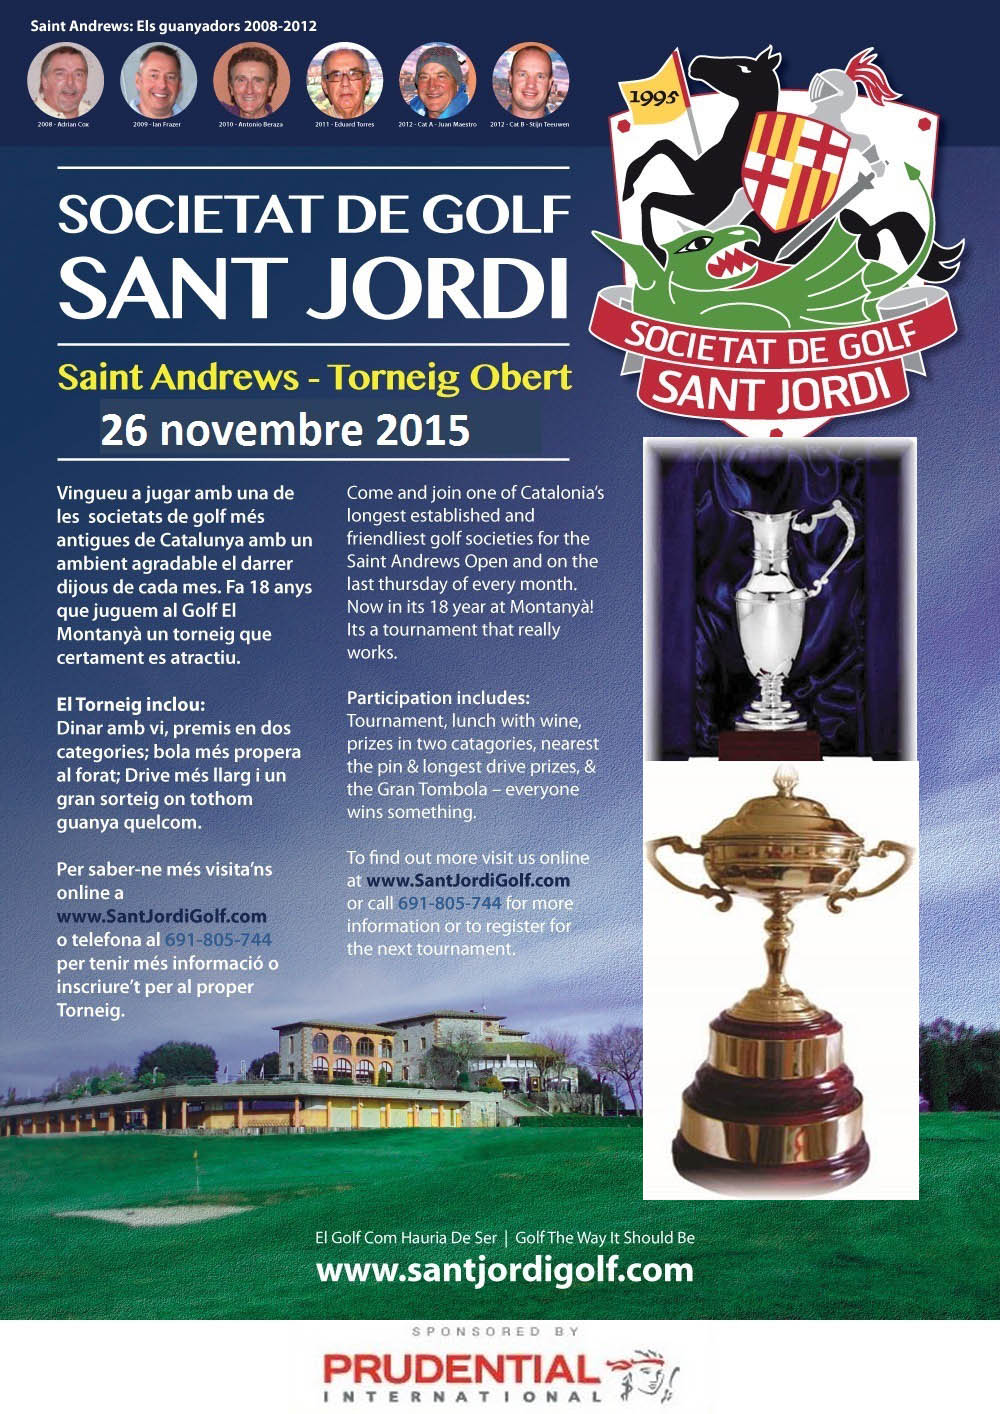 The saint Andrews Trophy 2013